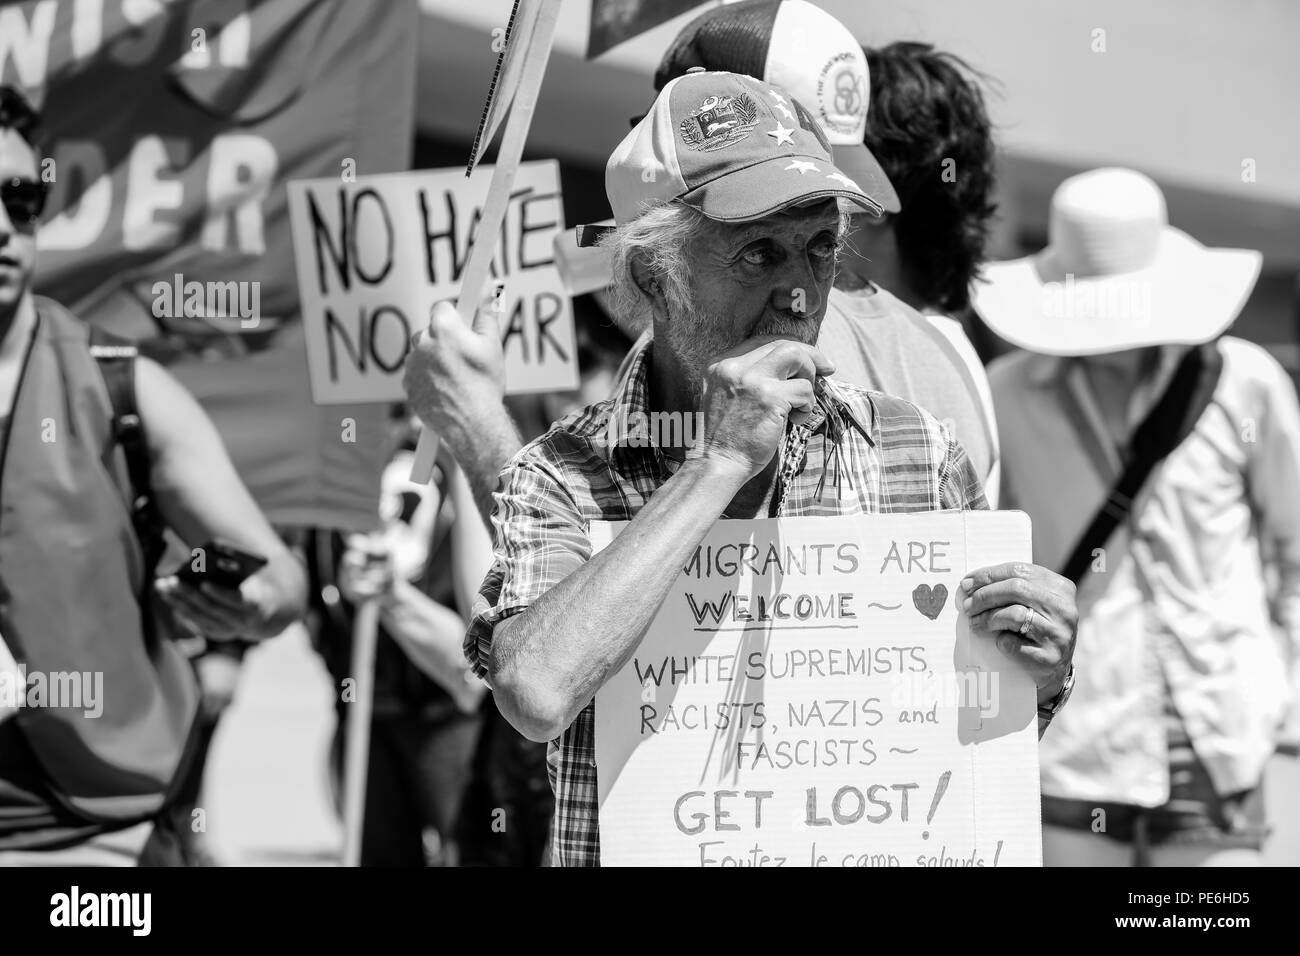 AUGUST 11, 2018 - TORONTO, CANADA: 'STOP THE HATE' ANTI RACISM RALLY. Stock Photo